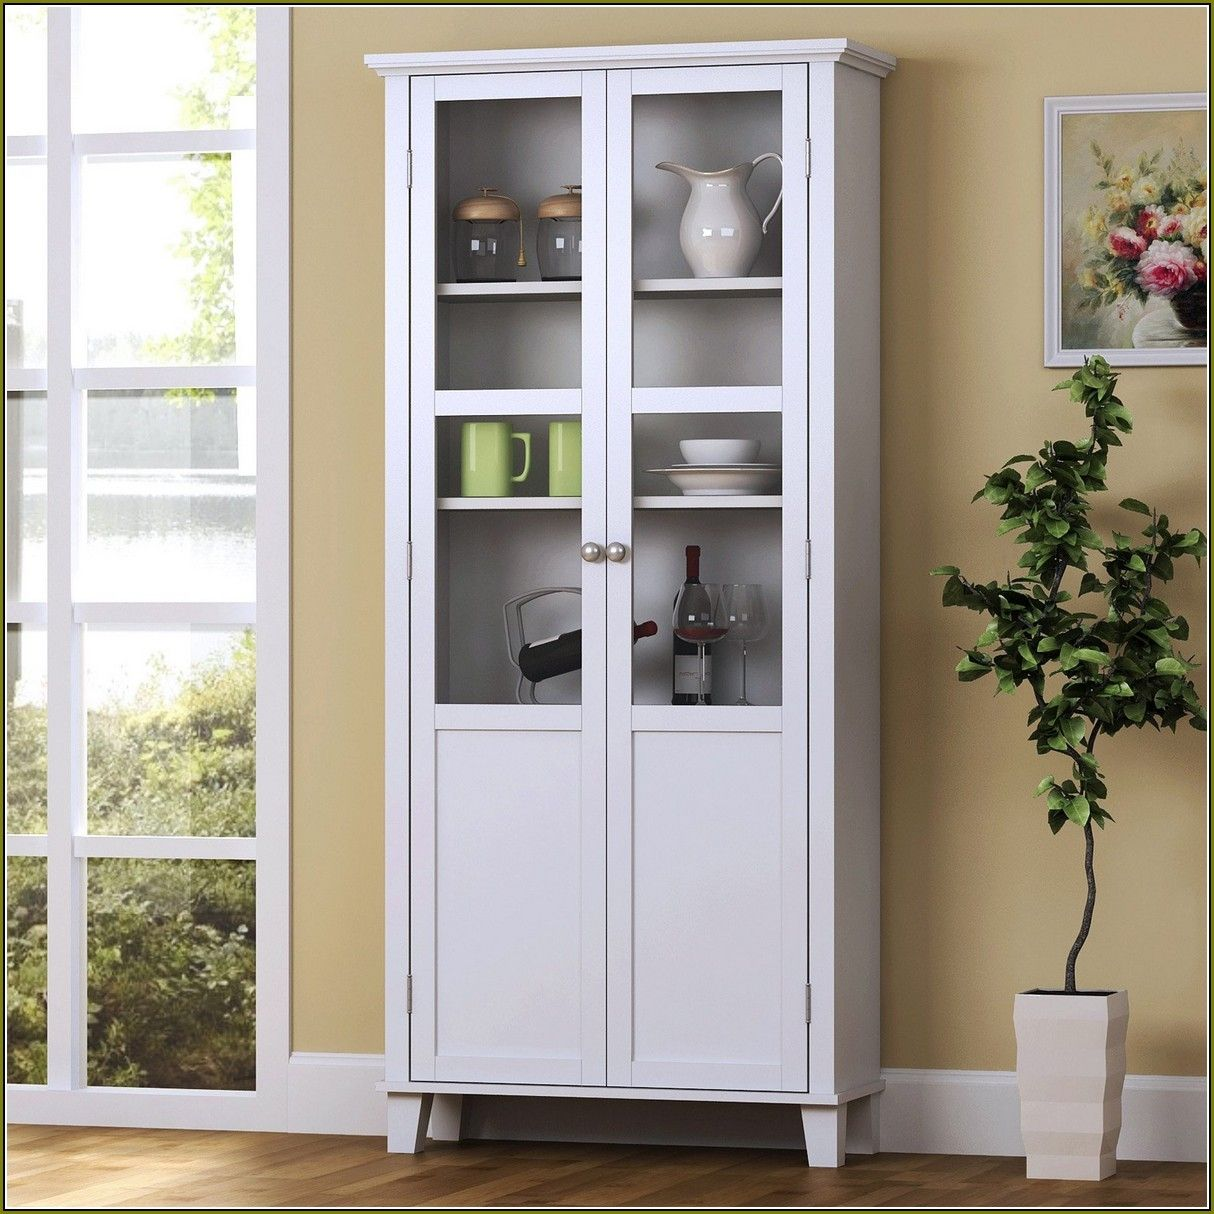 Picture of ikea free standing pantry country style the best stunning tall kitchen cabinets for kitchen decoration ikea storage cabinets for tall kitchen cabinets with vase and interior paint color also french planetlyrics Gallery